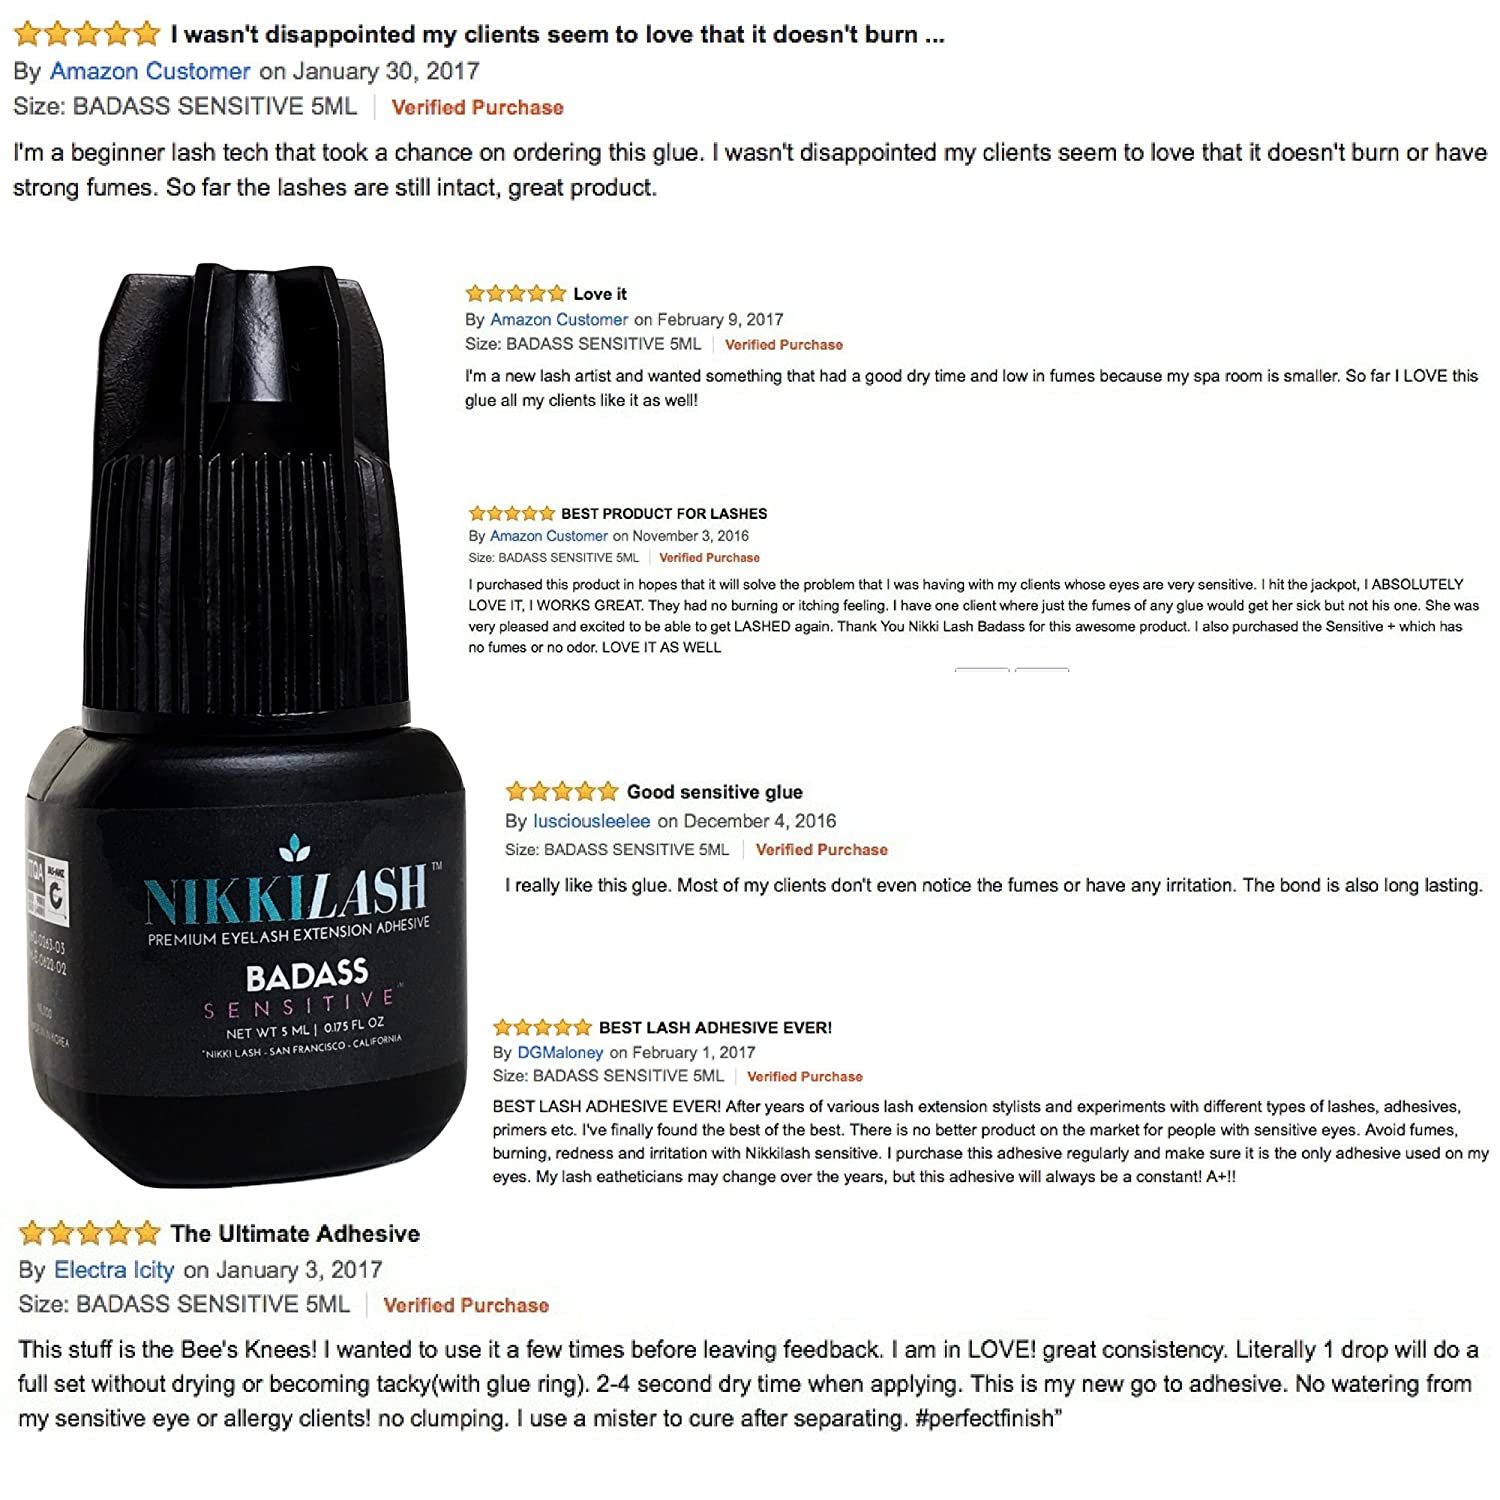 3afea5326af Amazon.com : NIKKILASH BADASS SENSITIVE Eyelash Extension Glue with  Latex-Free Low-Fume Low-Odor Less-Irritation | Formulated to Minimize  Allergy Reactions ...